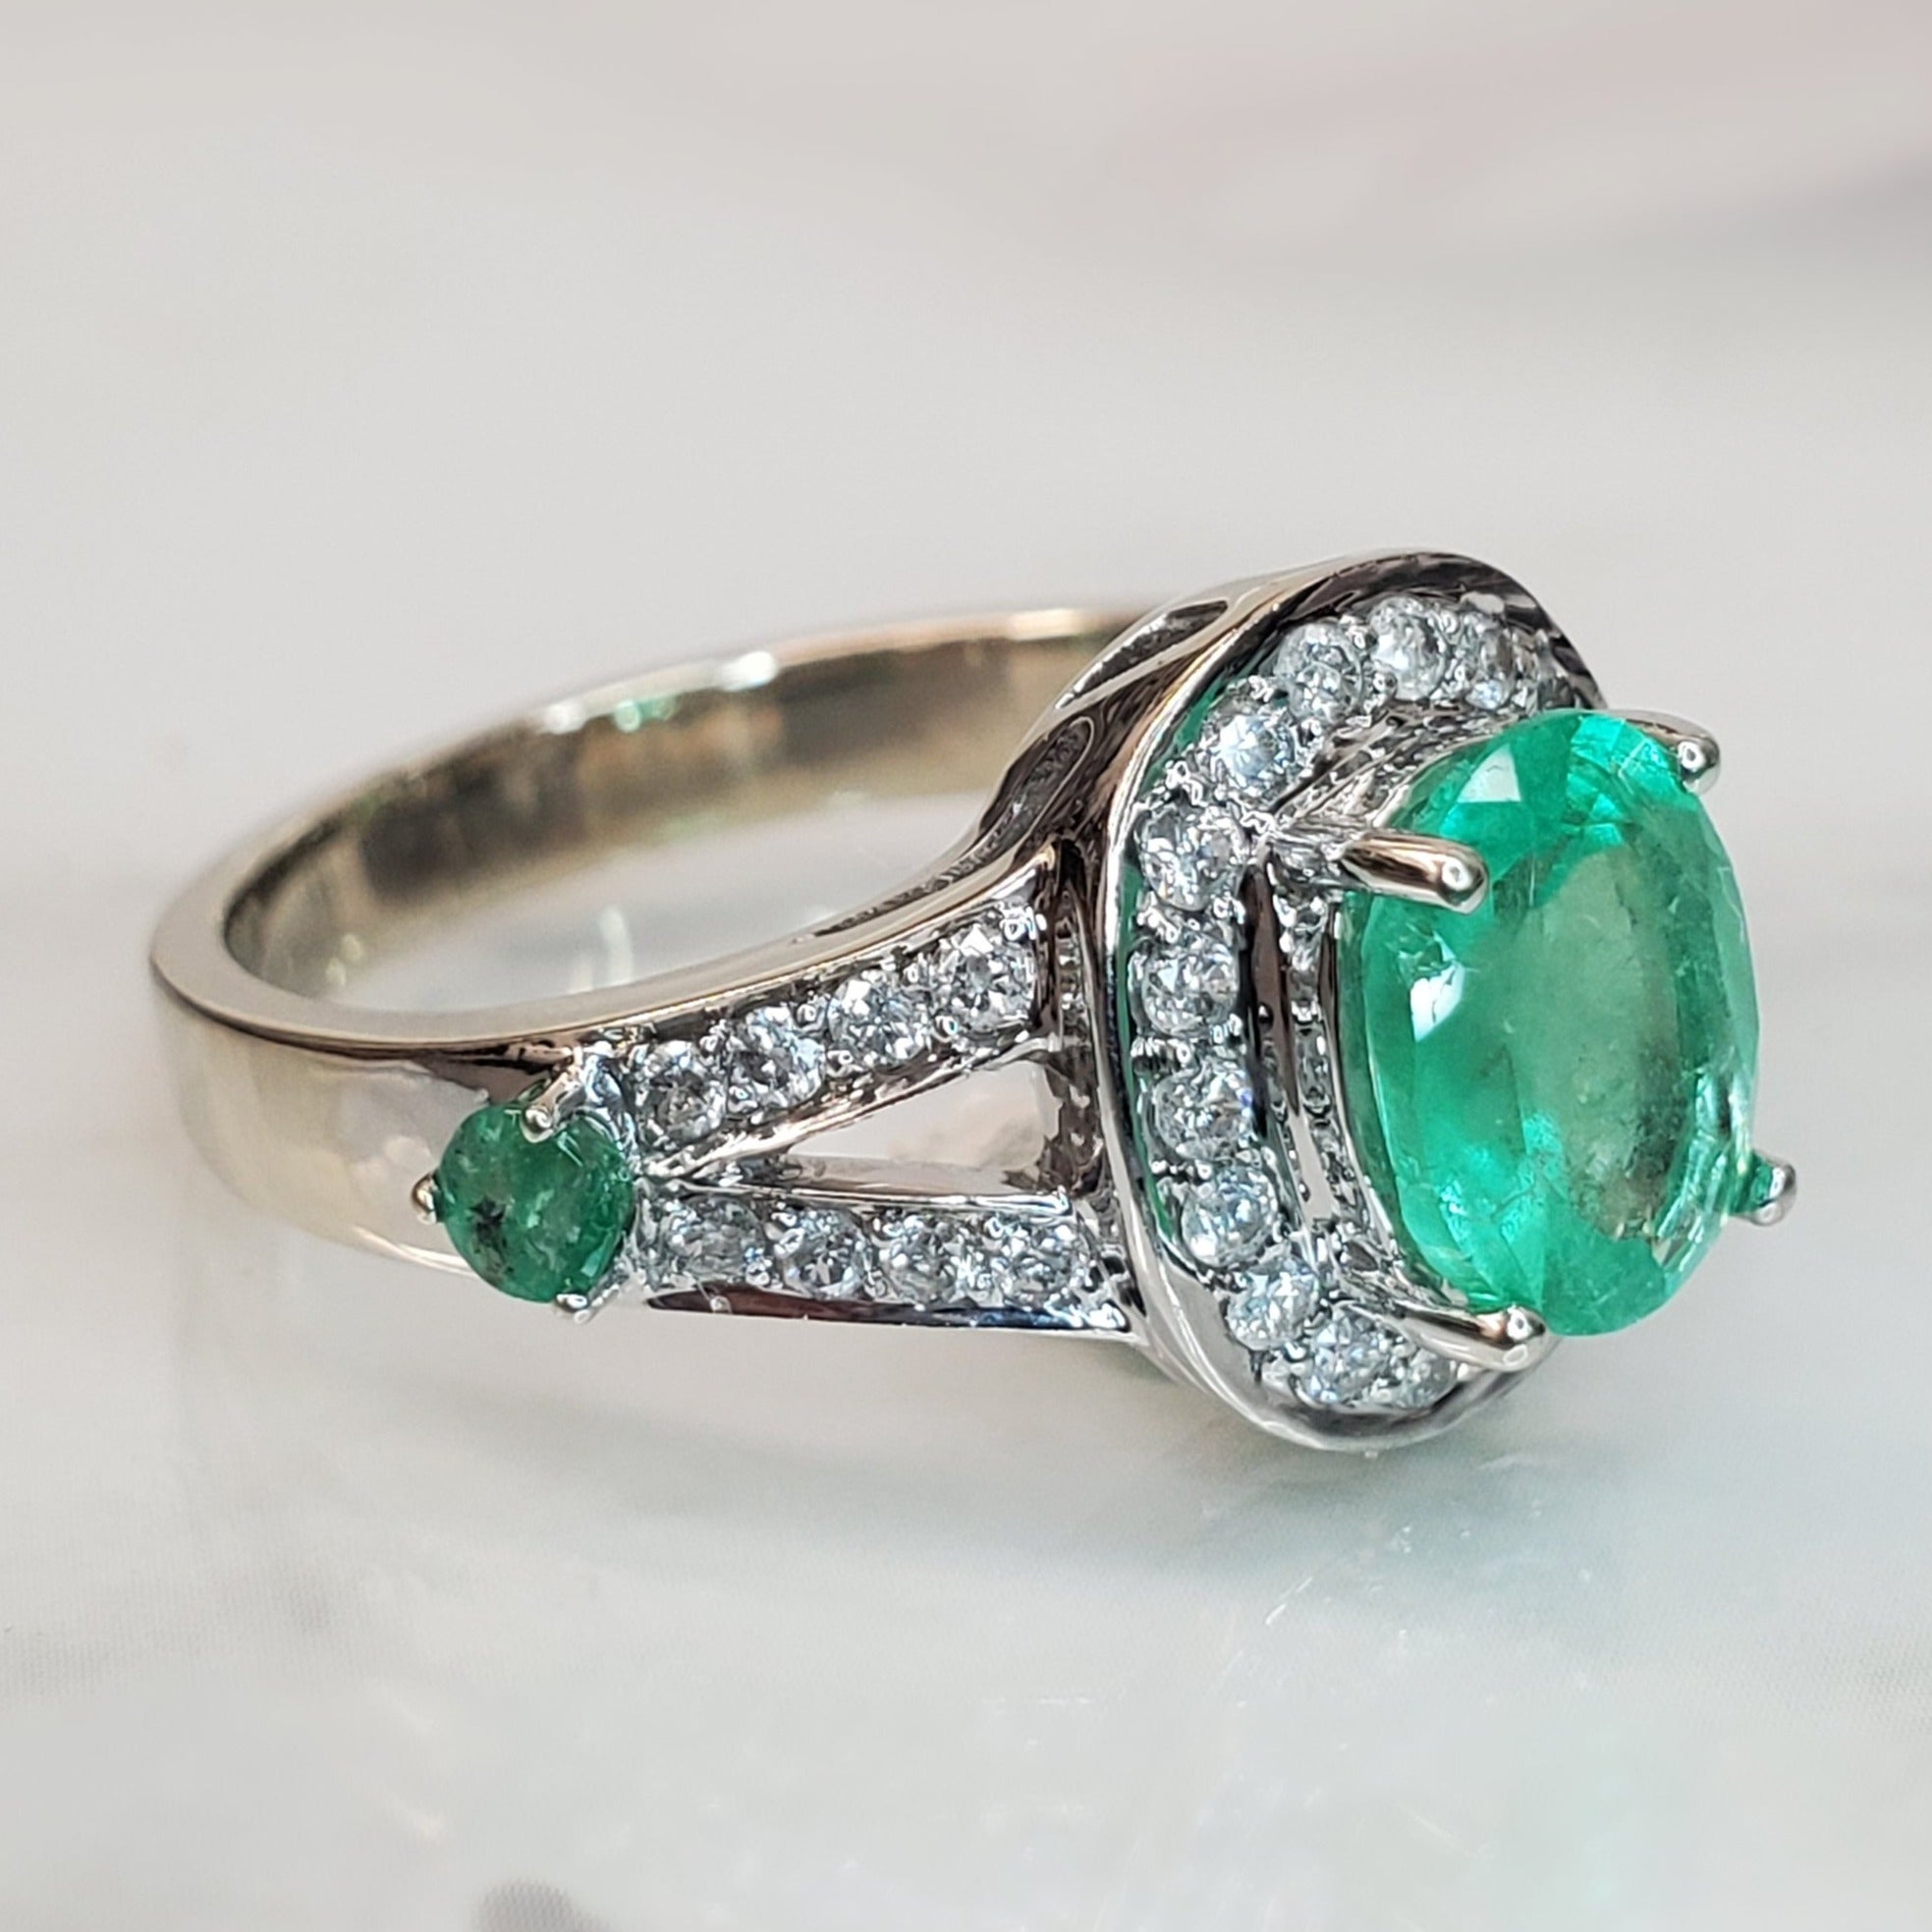 Pre-Owned 1.25ct Emerald Halo Split Shank Ring in 14k White Gold